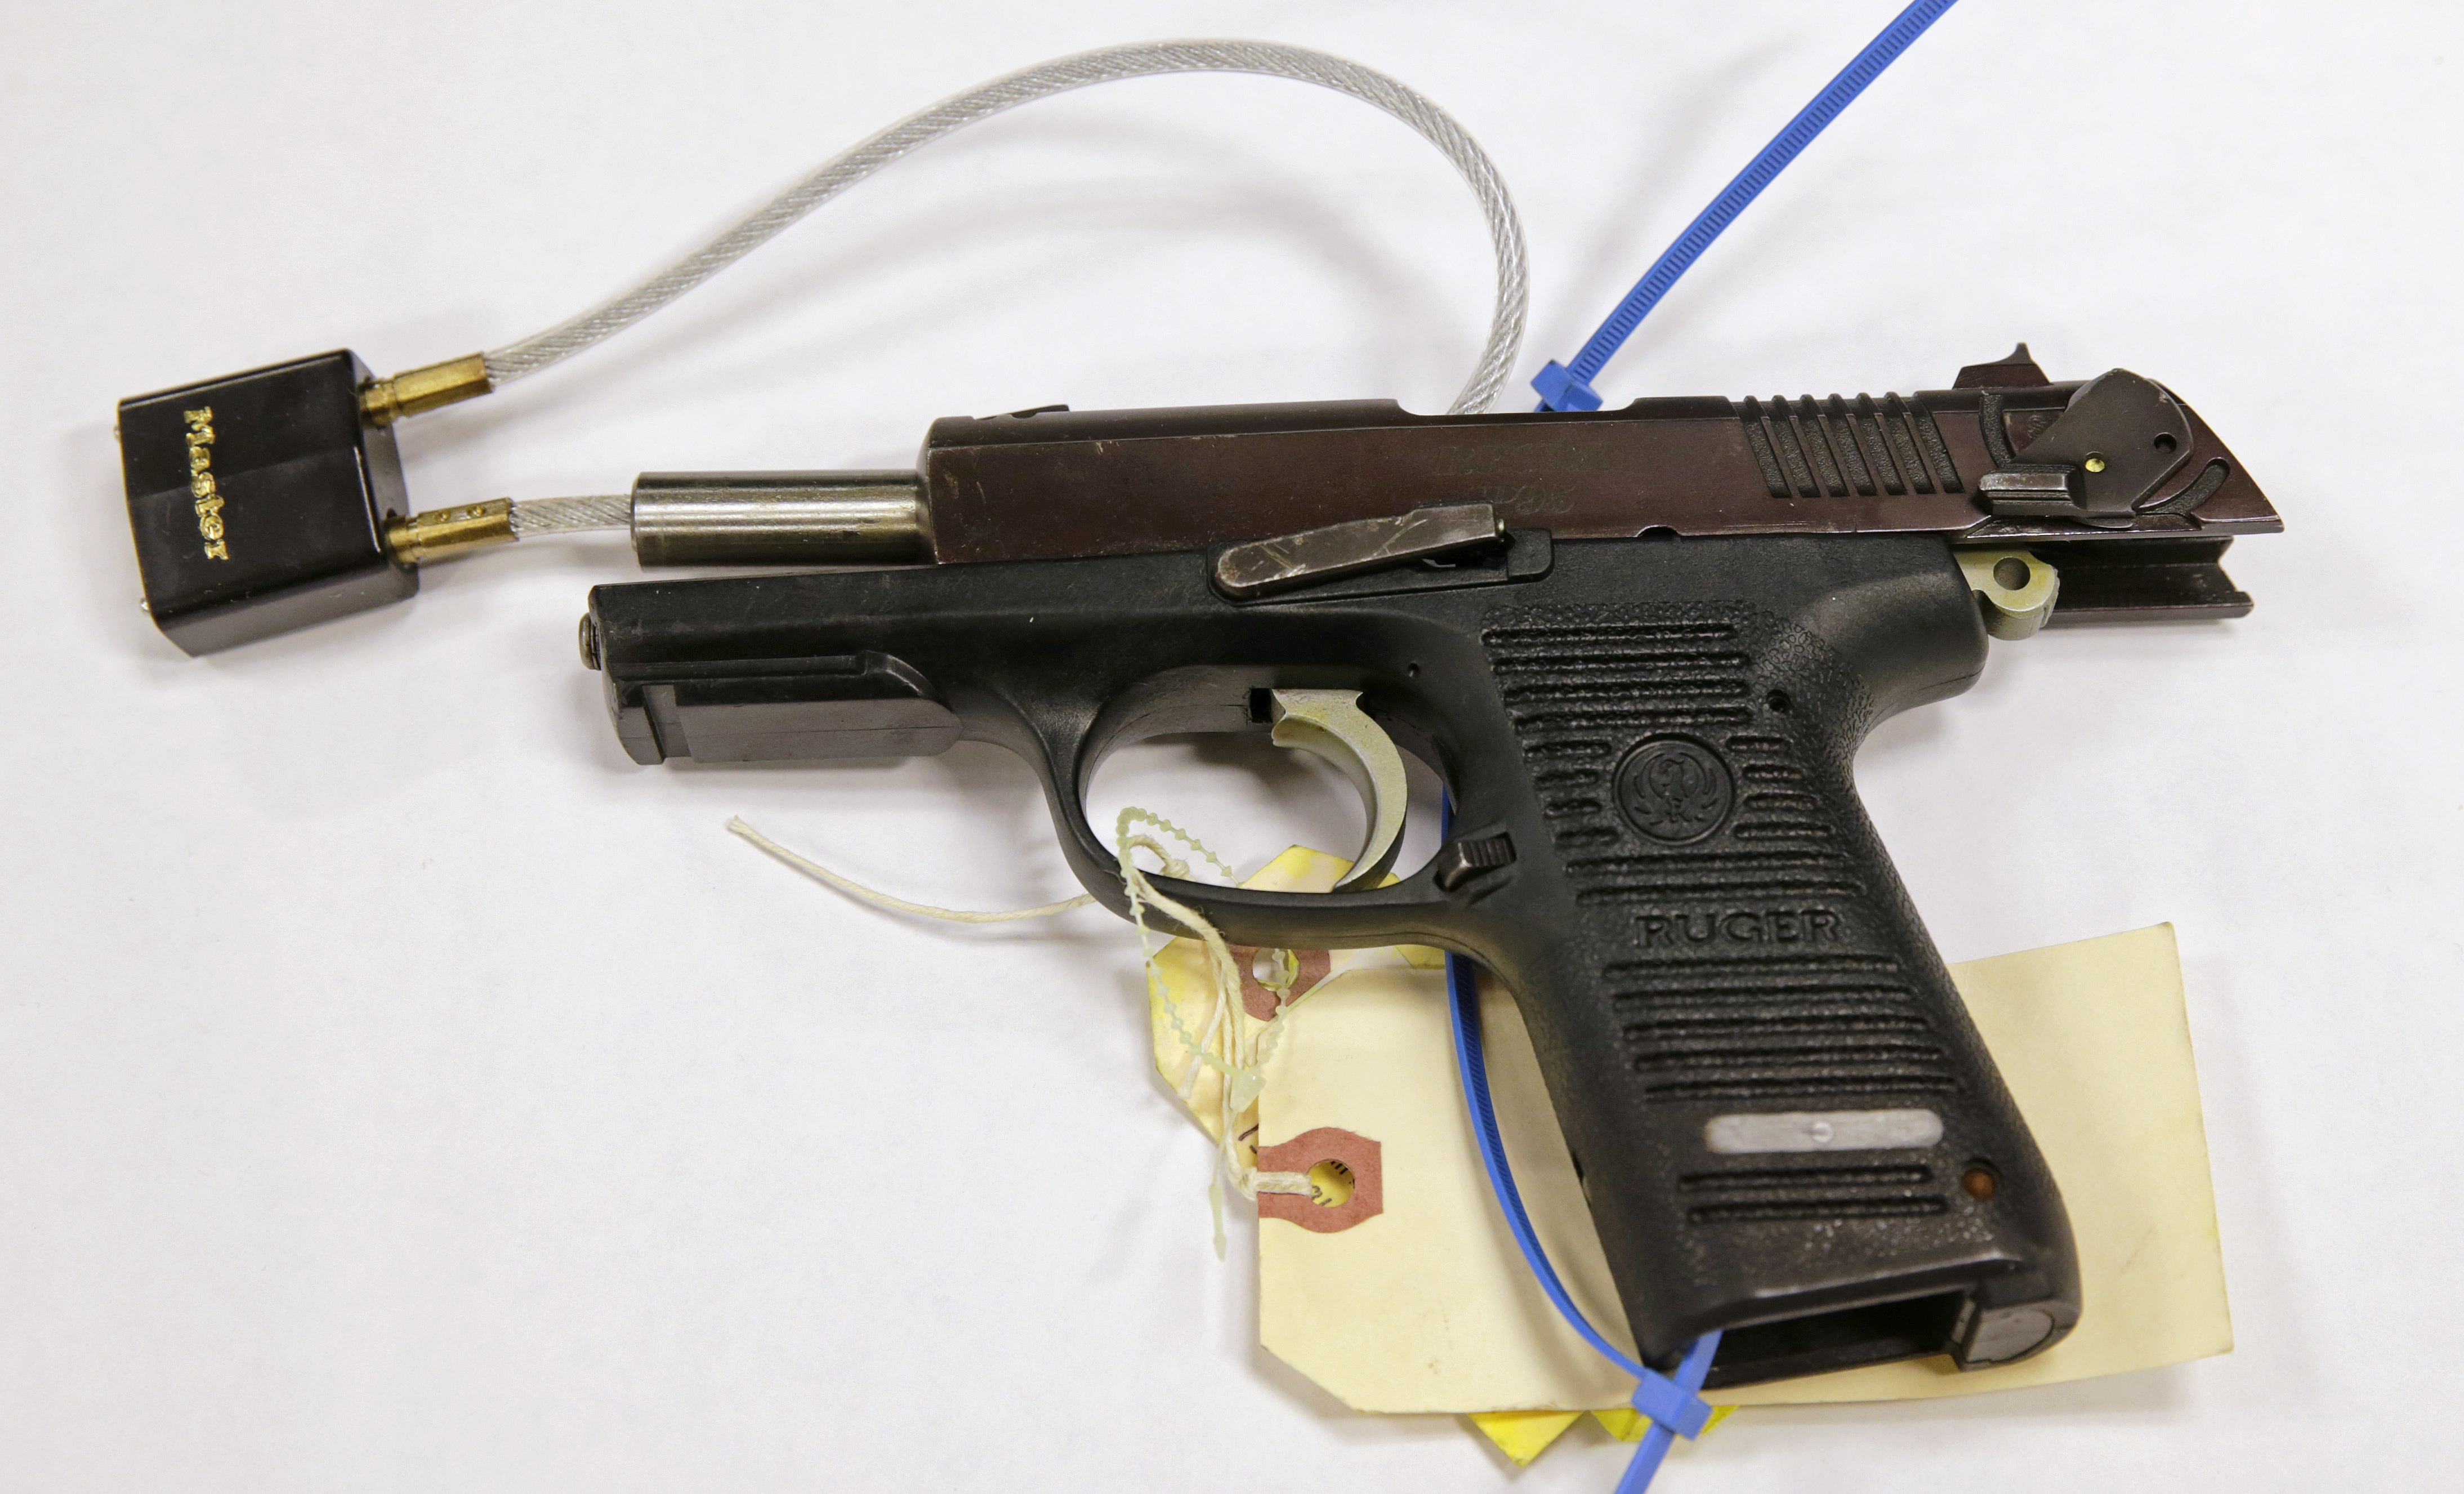 A Ruger pistol, that was shown during the Dzhokhar Tsarnaev federal death penalty trial, is displayed at a conference room at the John Joseph Moakley United States Courthouse in Boston, Tuesday, March 17, 2015.  Stephen Silva said during testimony...